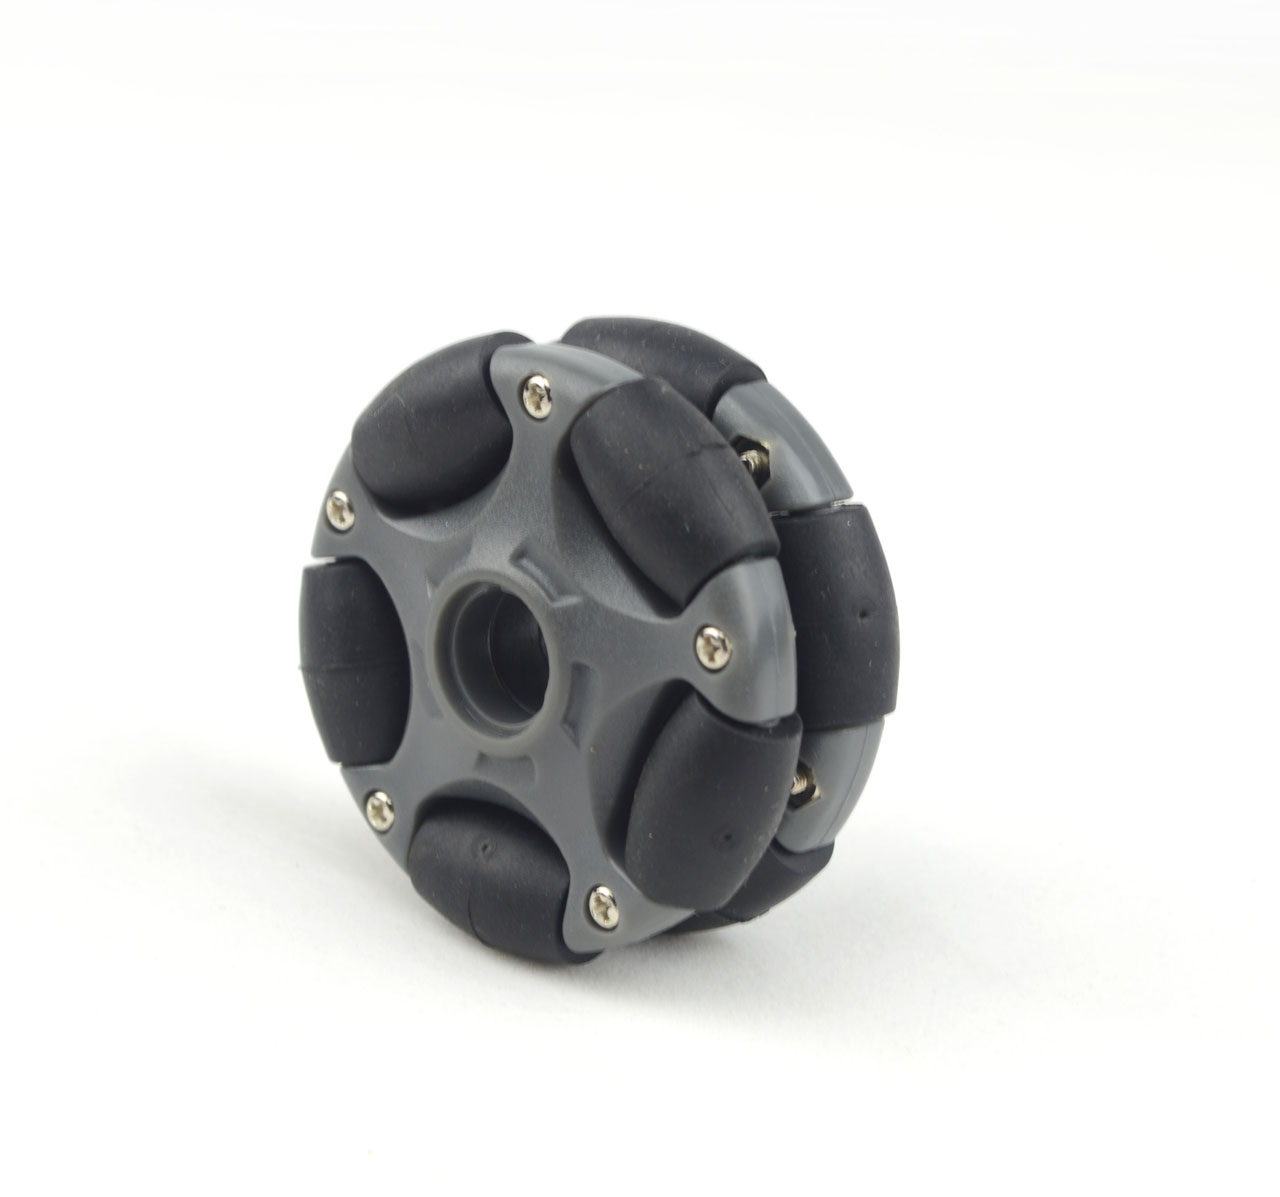 58 mm NXT compatible omnidirectional wheel (Omni wheel) 14135<br>